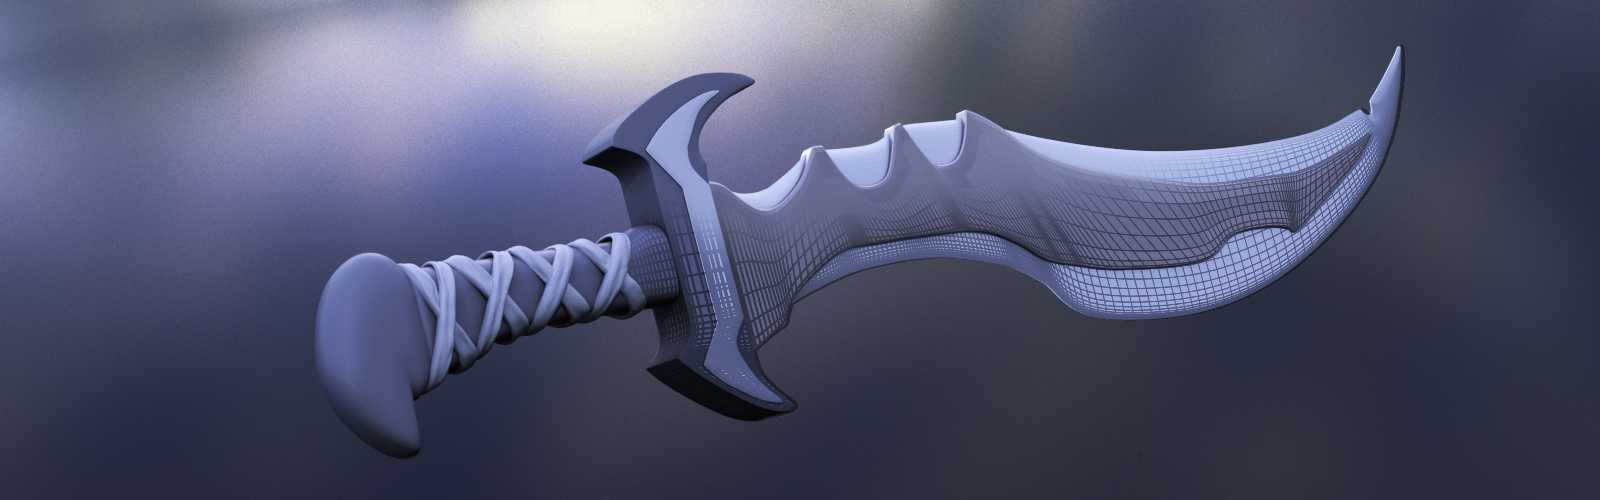 Use These 10 Easy Steps to Model a Sword in Maya   Pluralsight